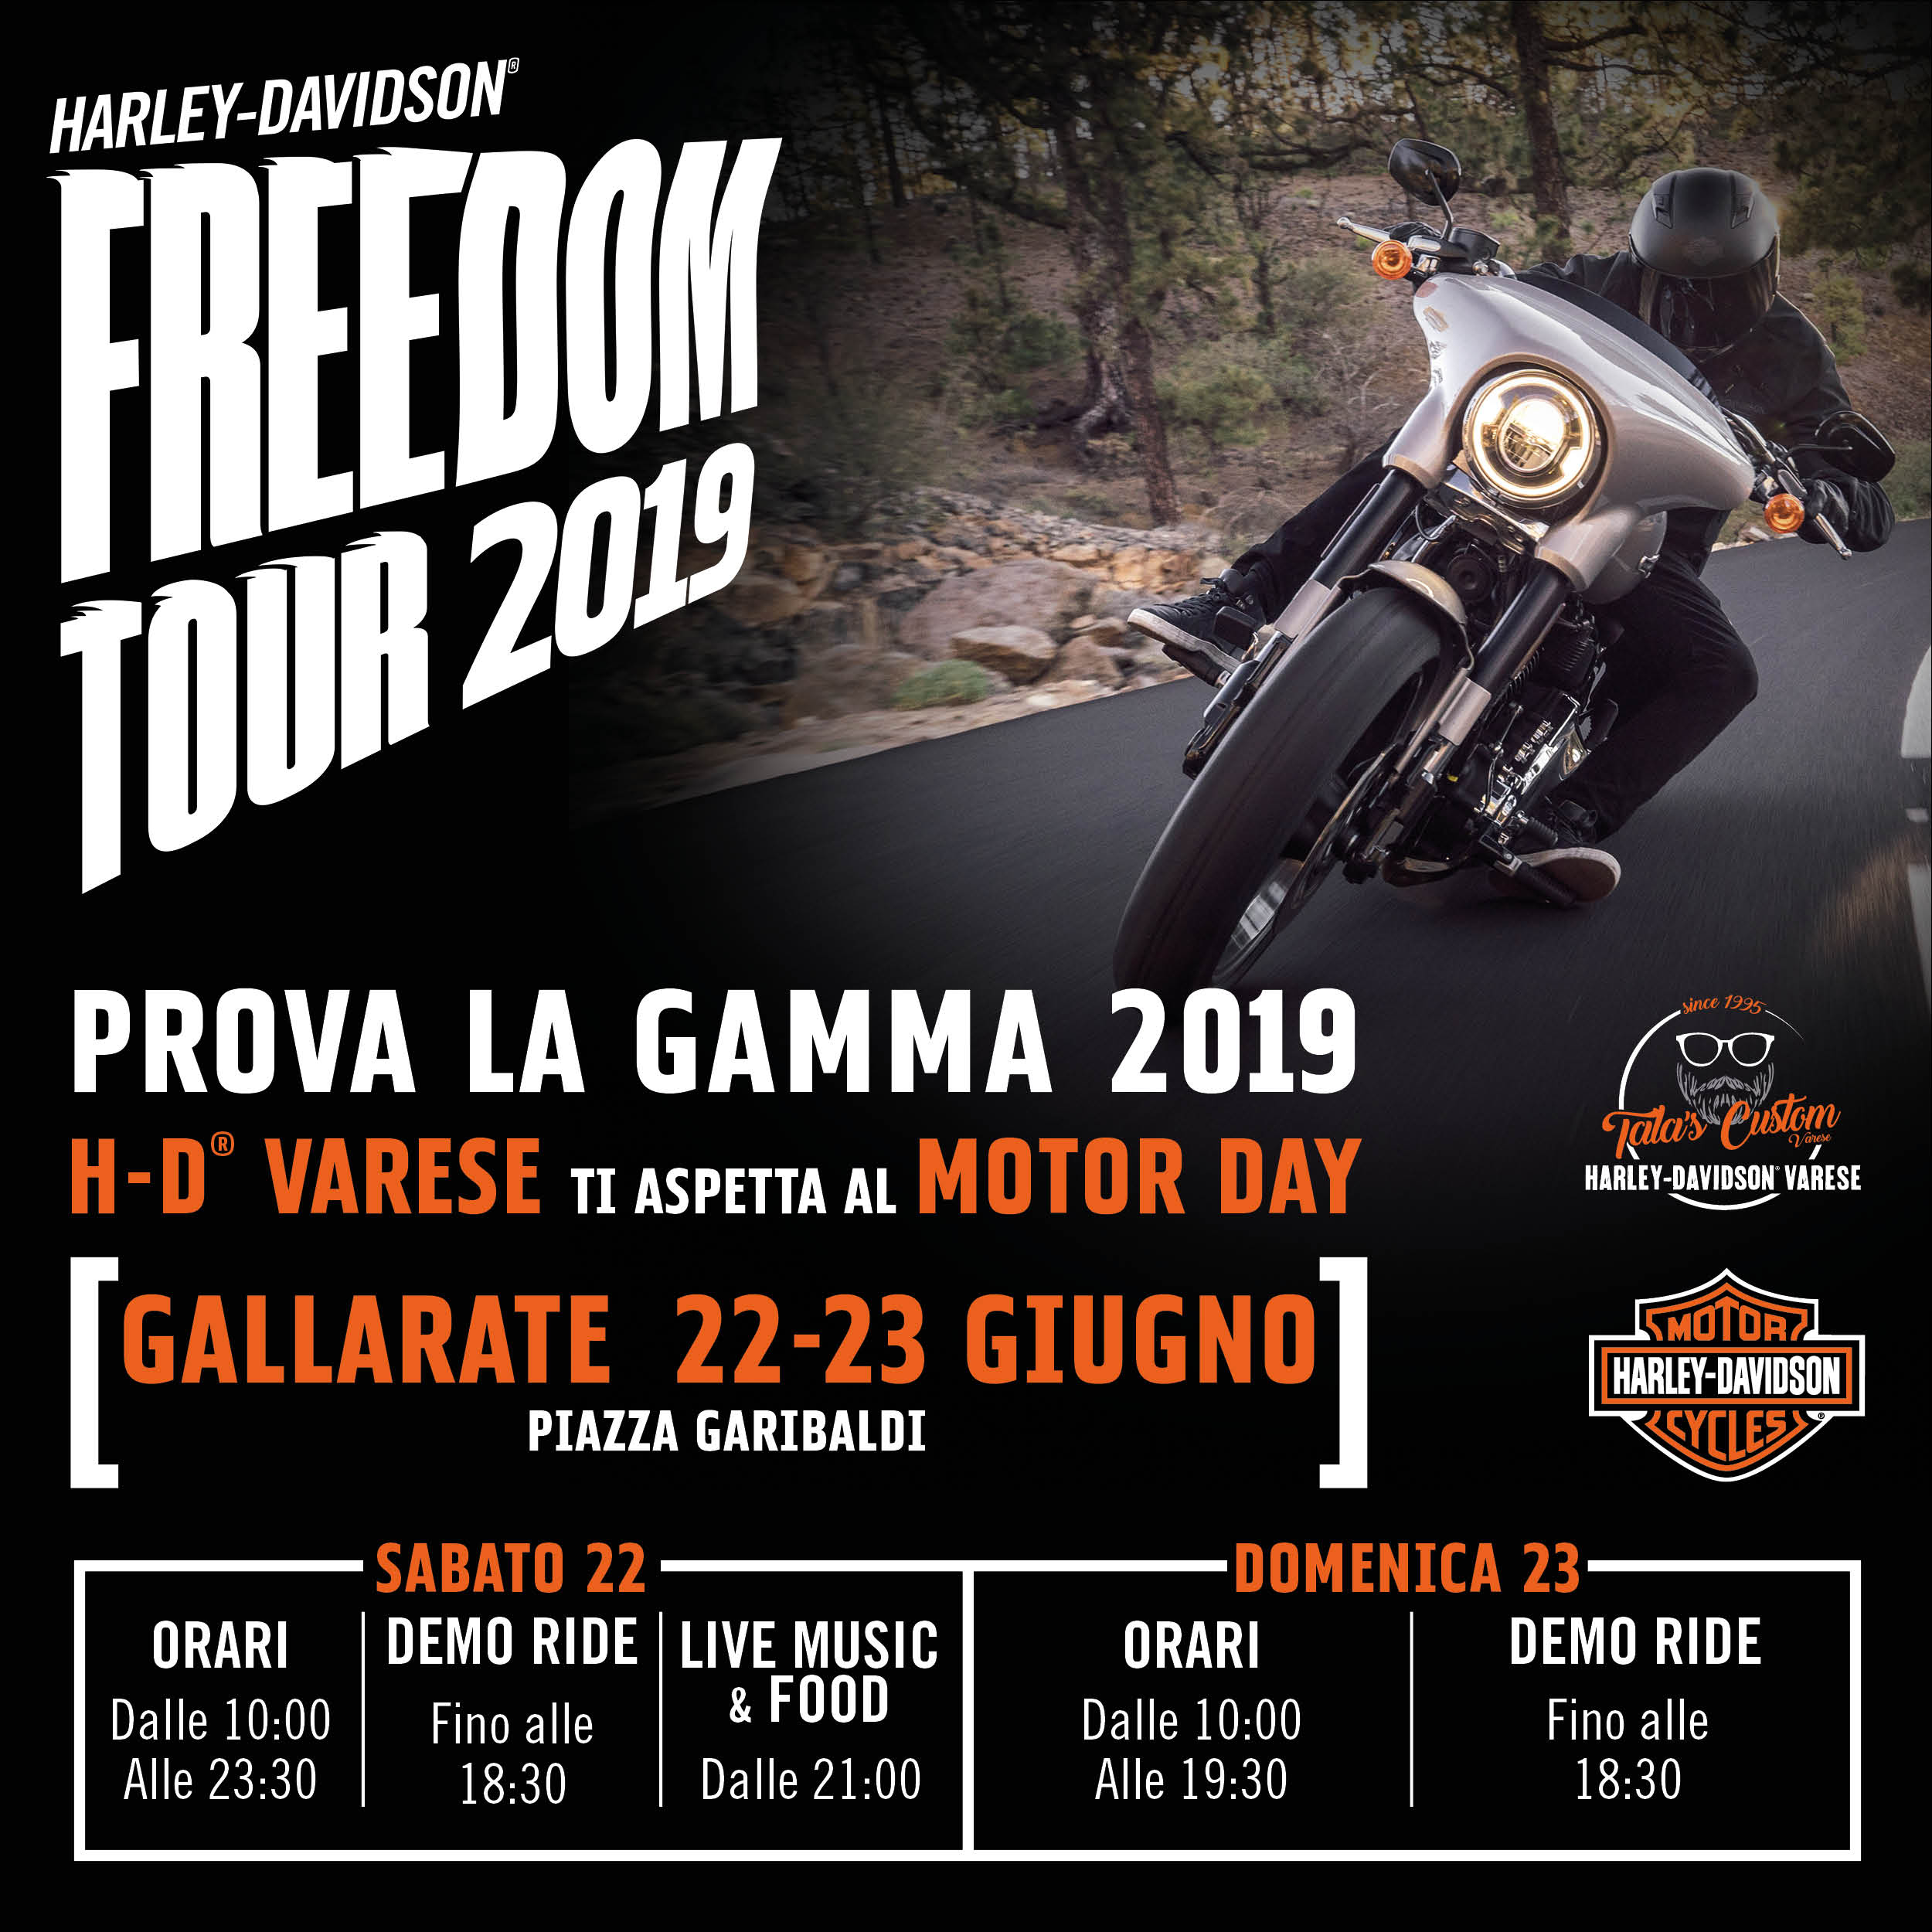 H DVarese FreedomTour 2019 post ig